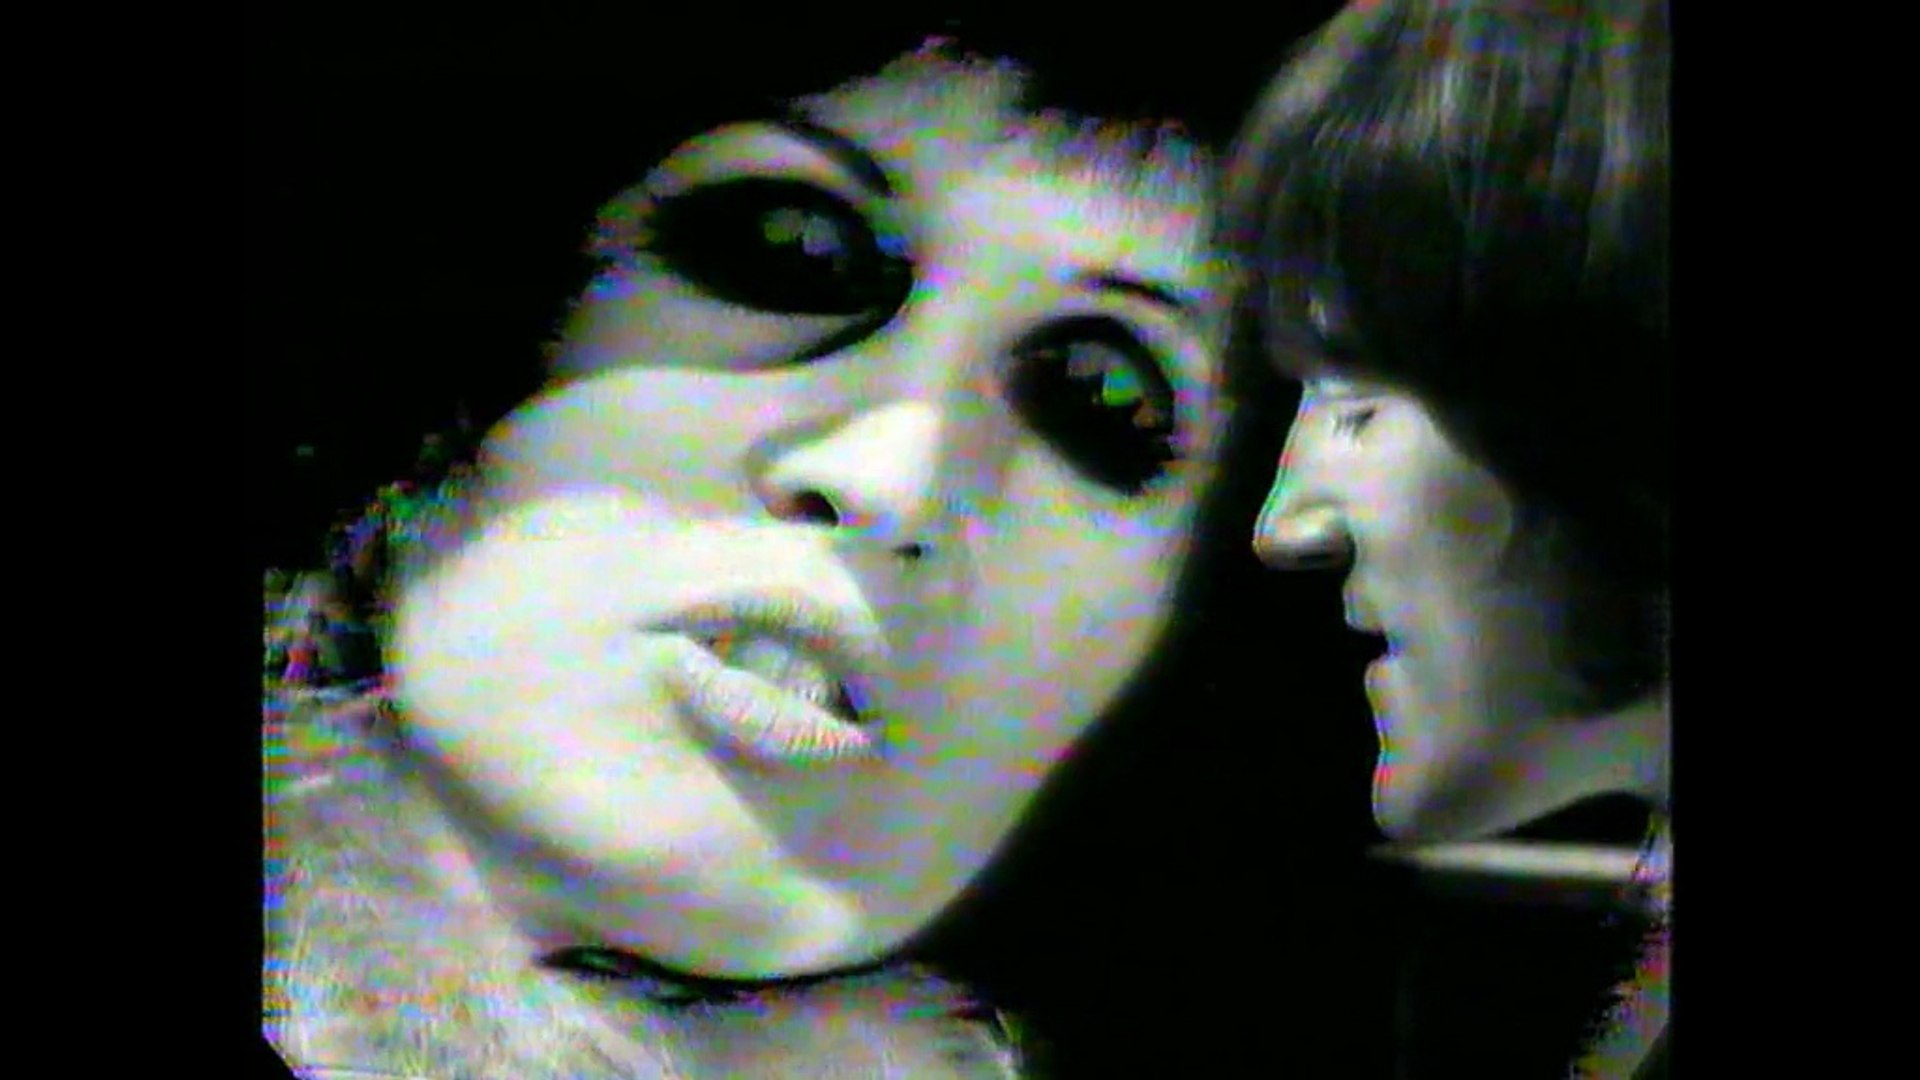 Julie Driscoll & Brian Auger - This Wheel's On Fire - 1968